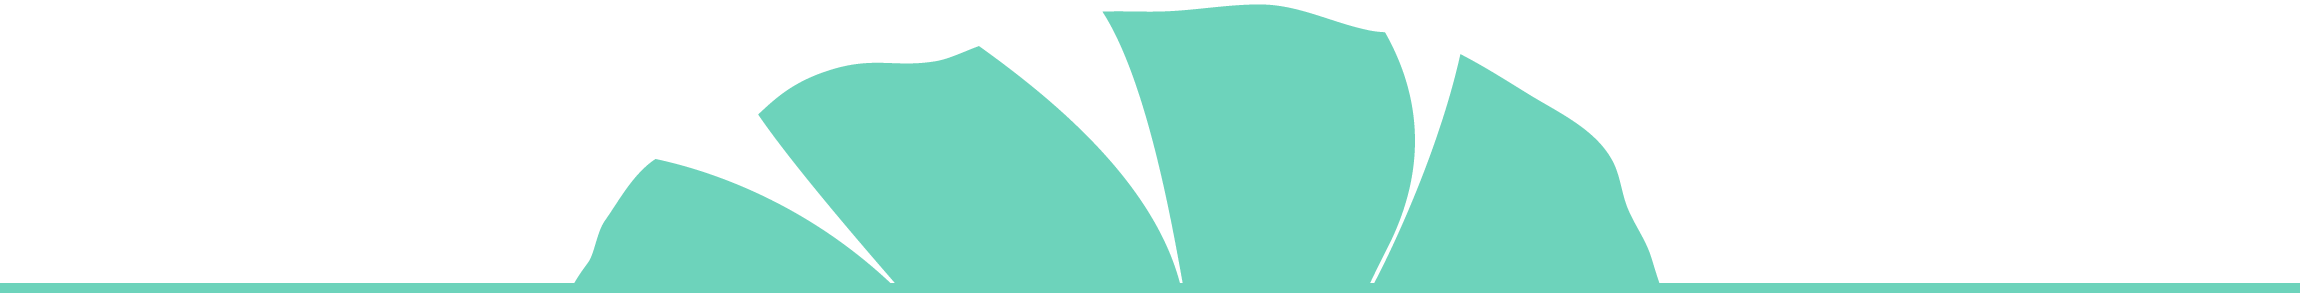 PalmDivider_Mint.png